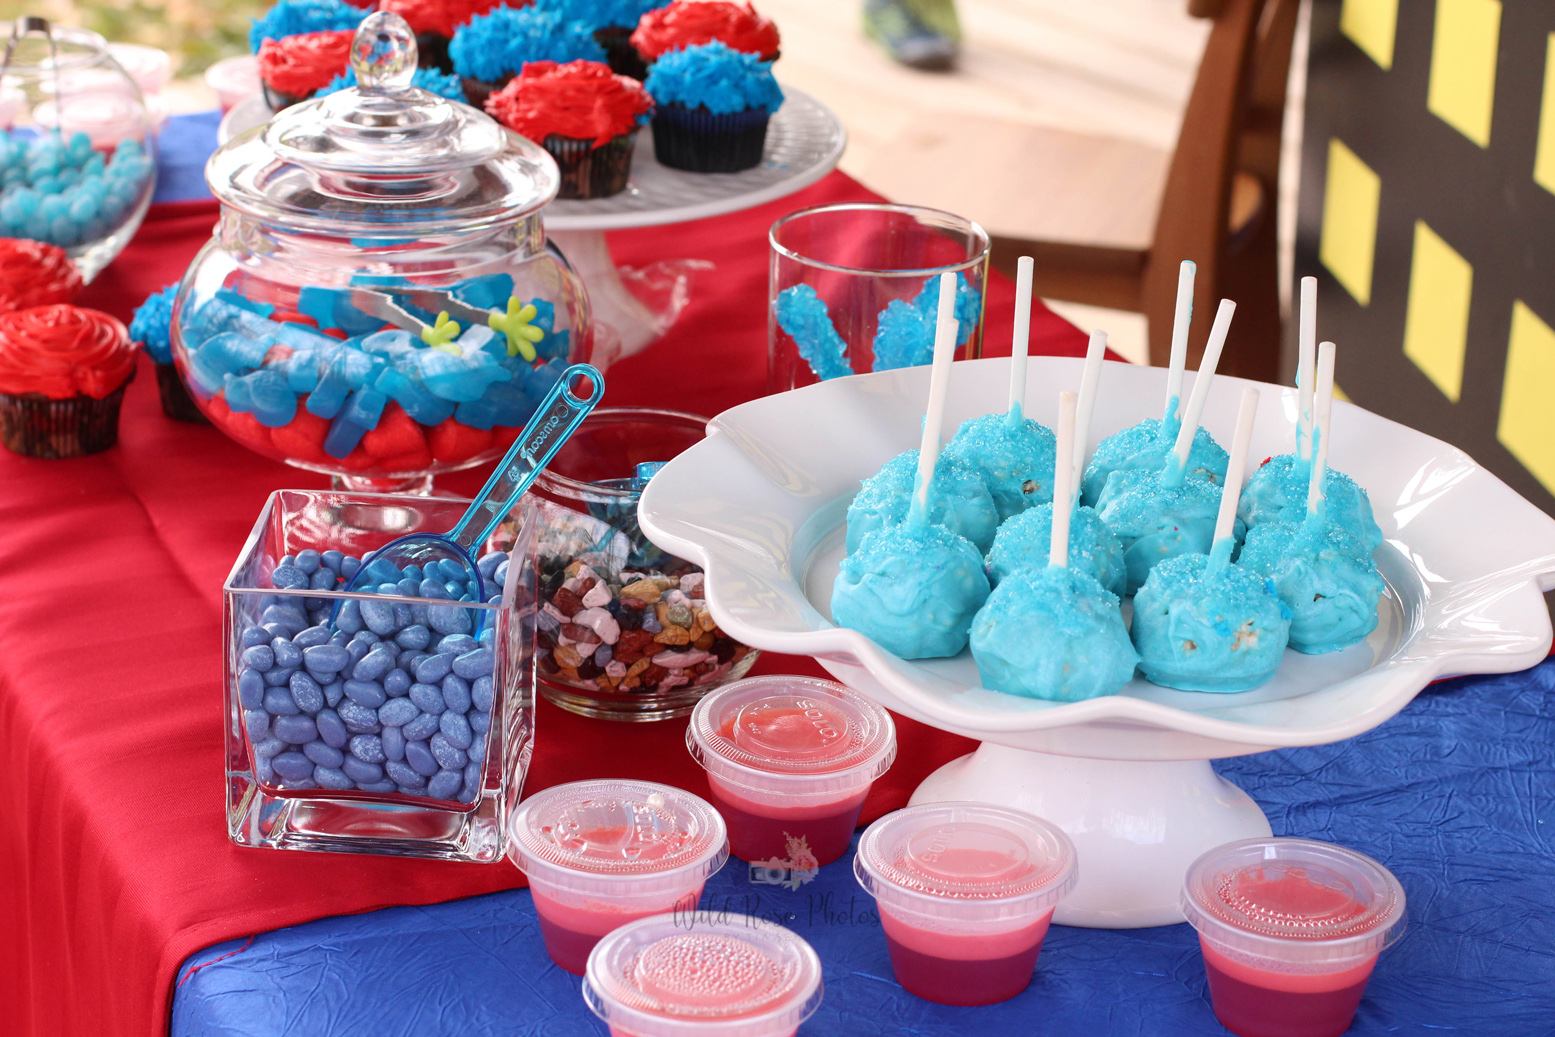 Superhero Fun! - It's a bird, it's a plane… it's a fantastic party theme for kids of all ages! The fun backdrops, the treats, and the mini superhero's made this day a ton of fun!View Gallery>Photography: Wild Rose Photos by Tia